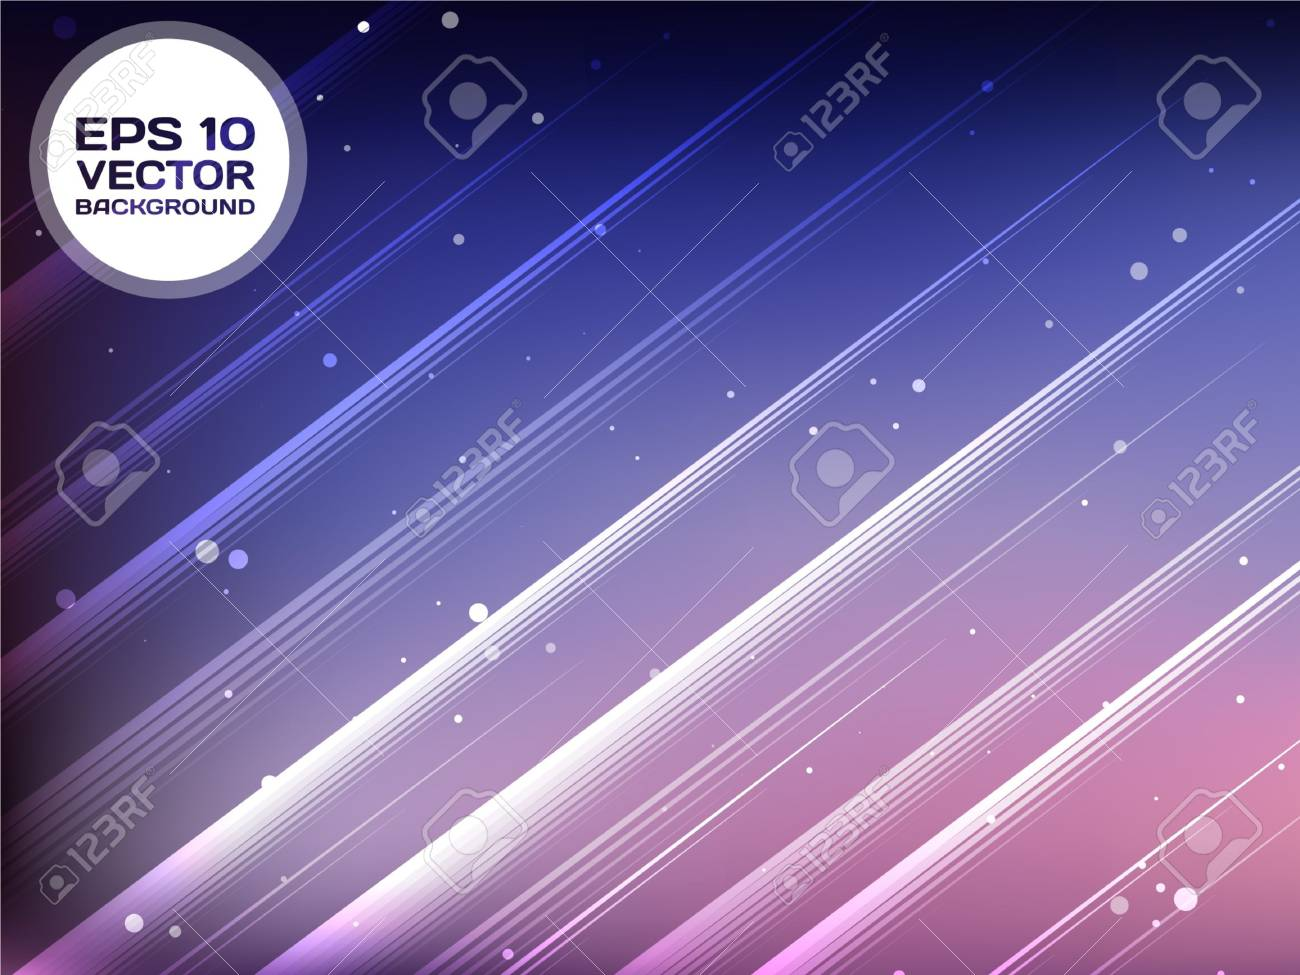 Vector Abstract Background With Rays Stock Vector - 16855820